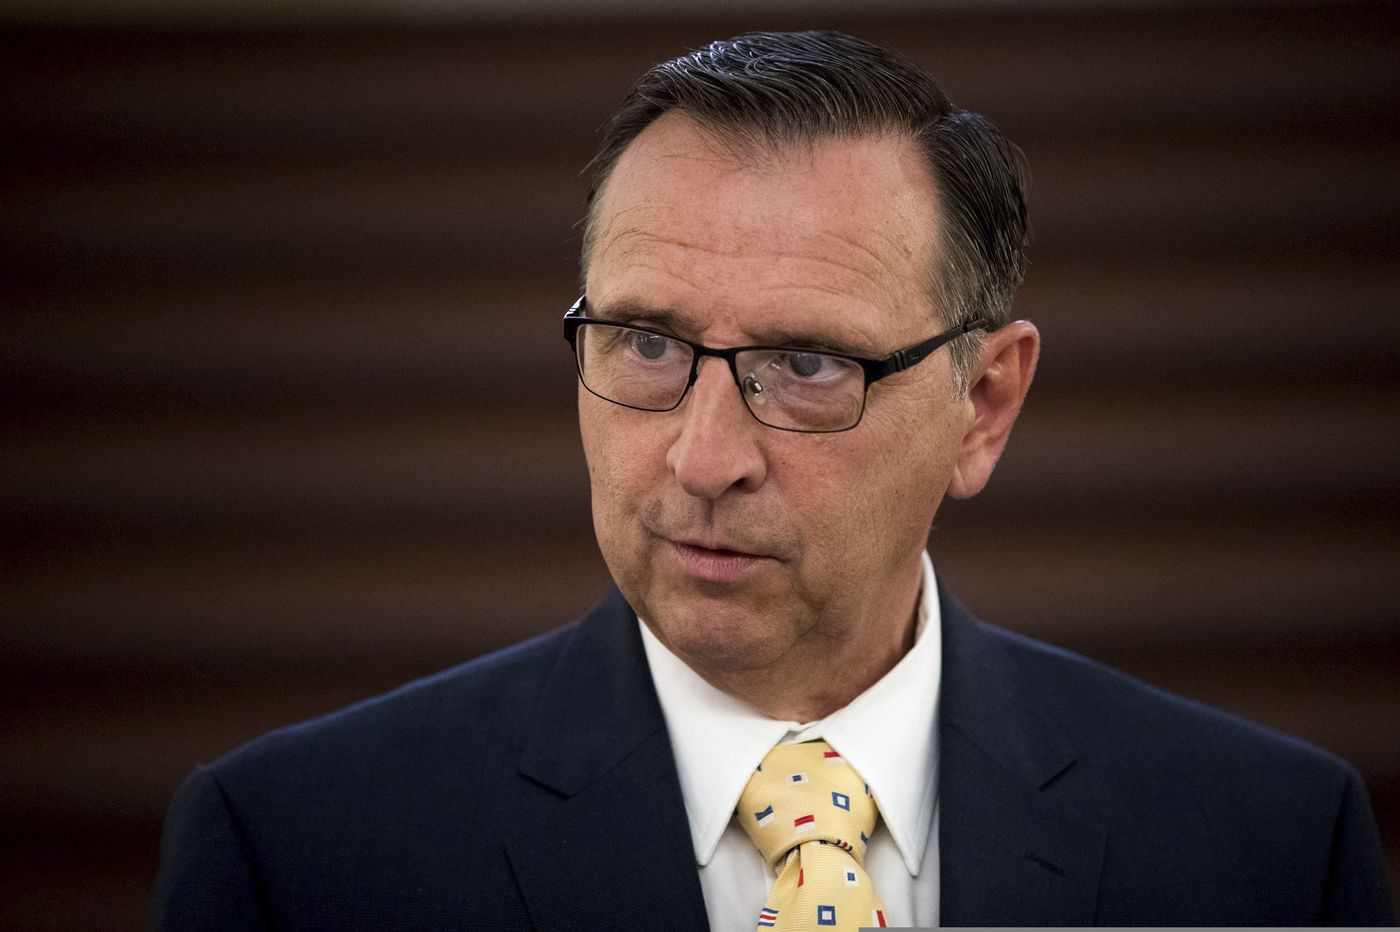 Feds accuse Scranton ex-mayor of using office to take bribes